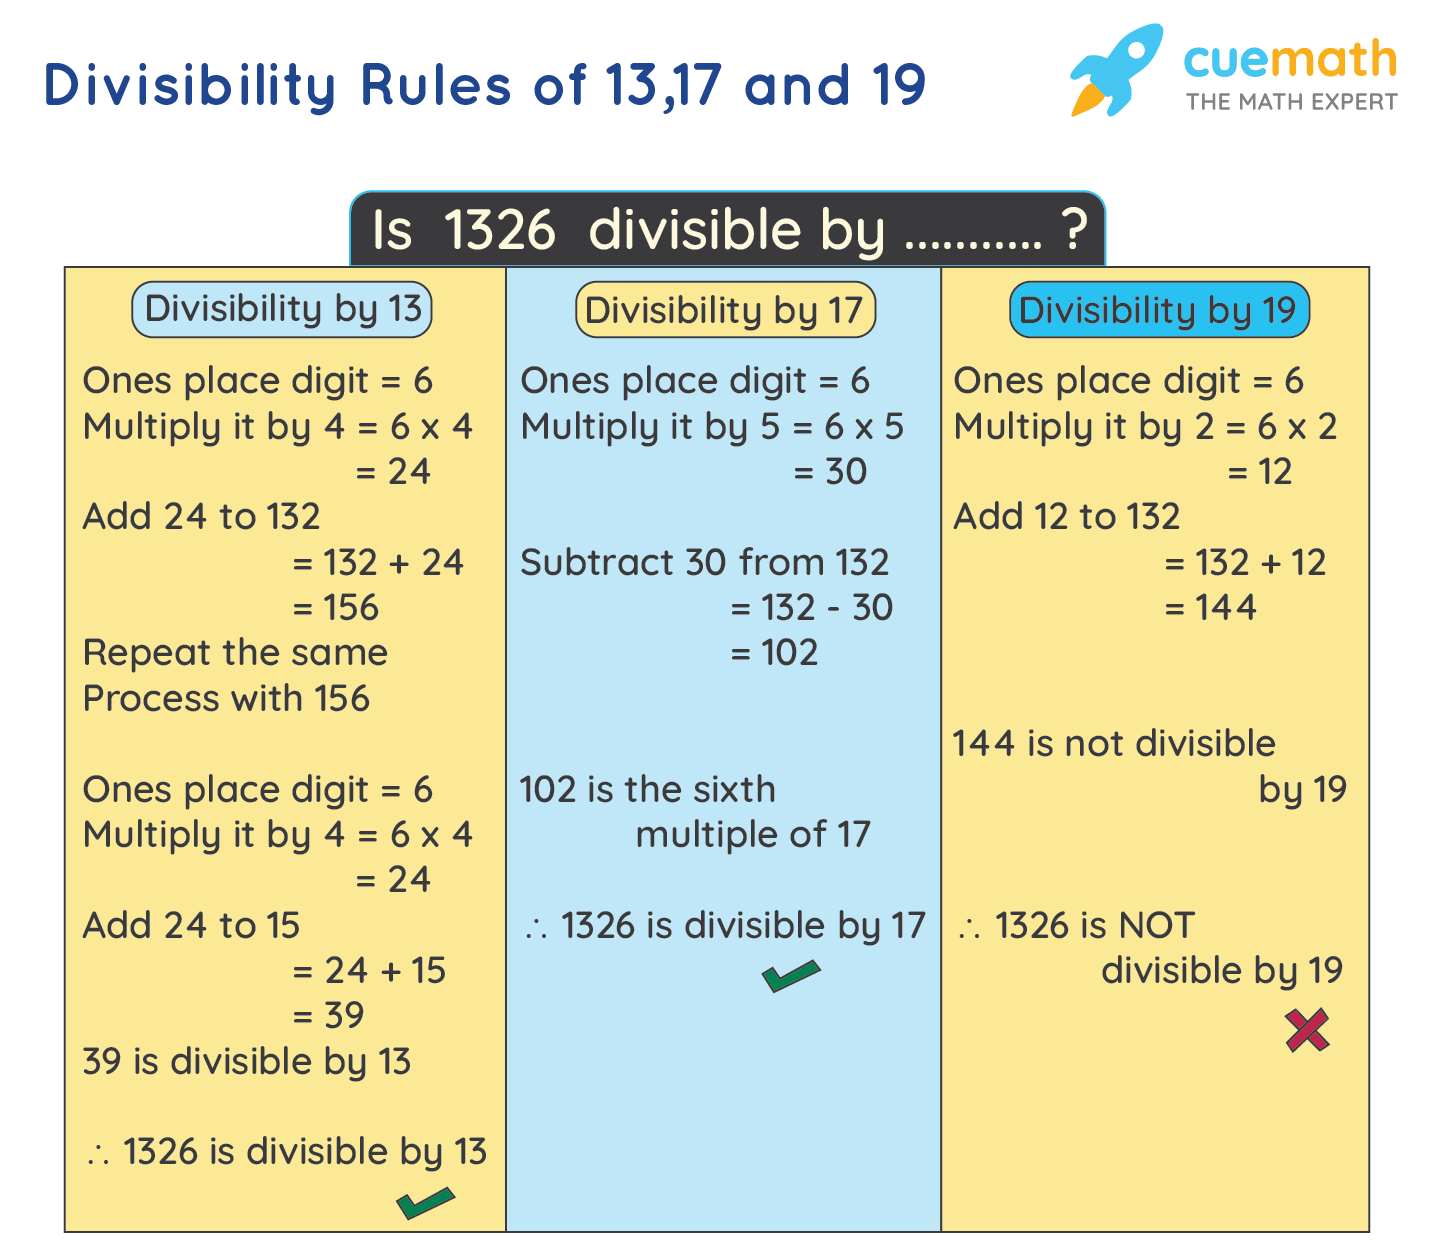 Divisibility Rules of 13, 17, and 19